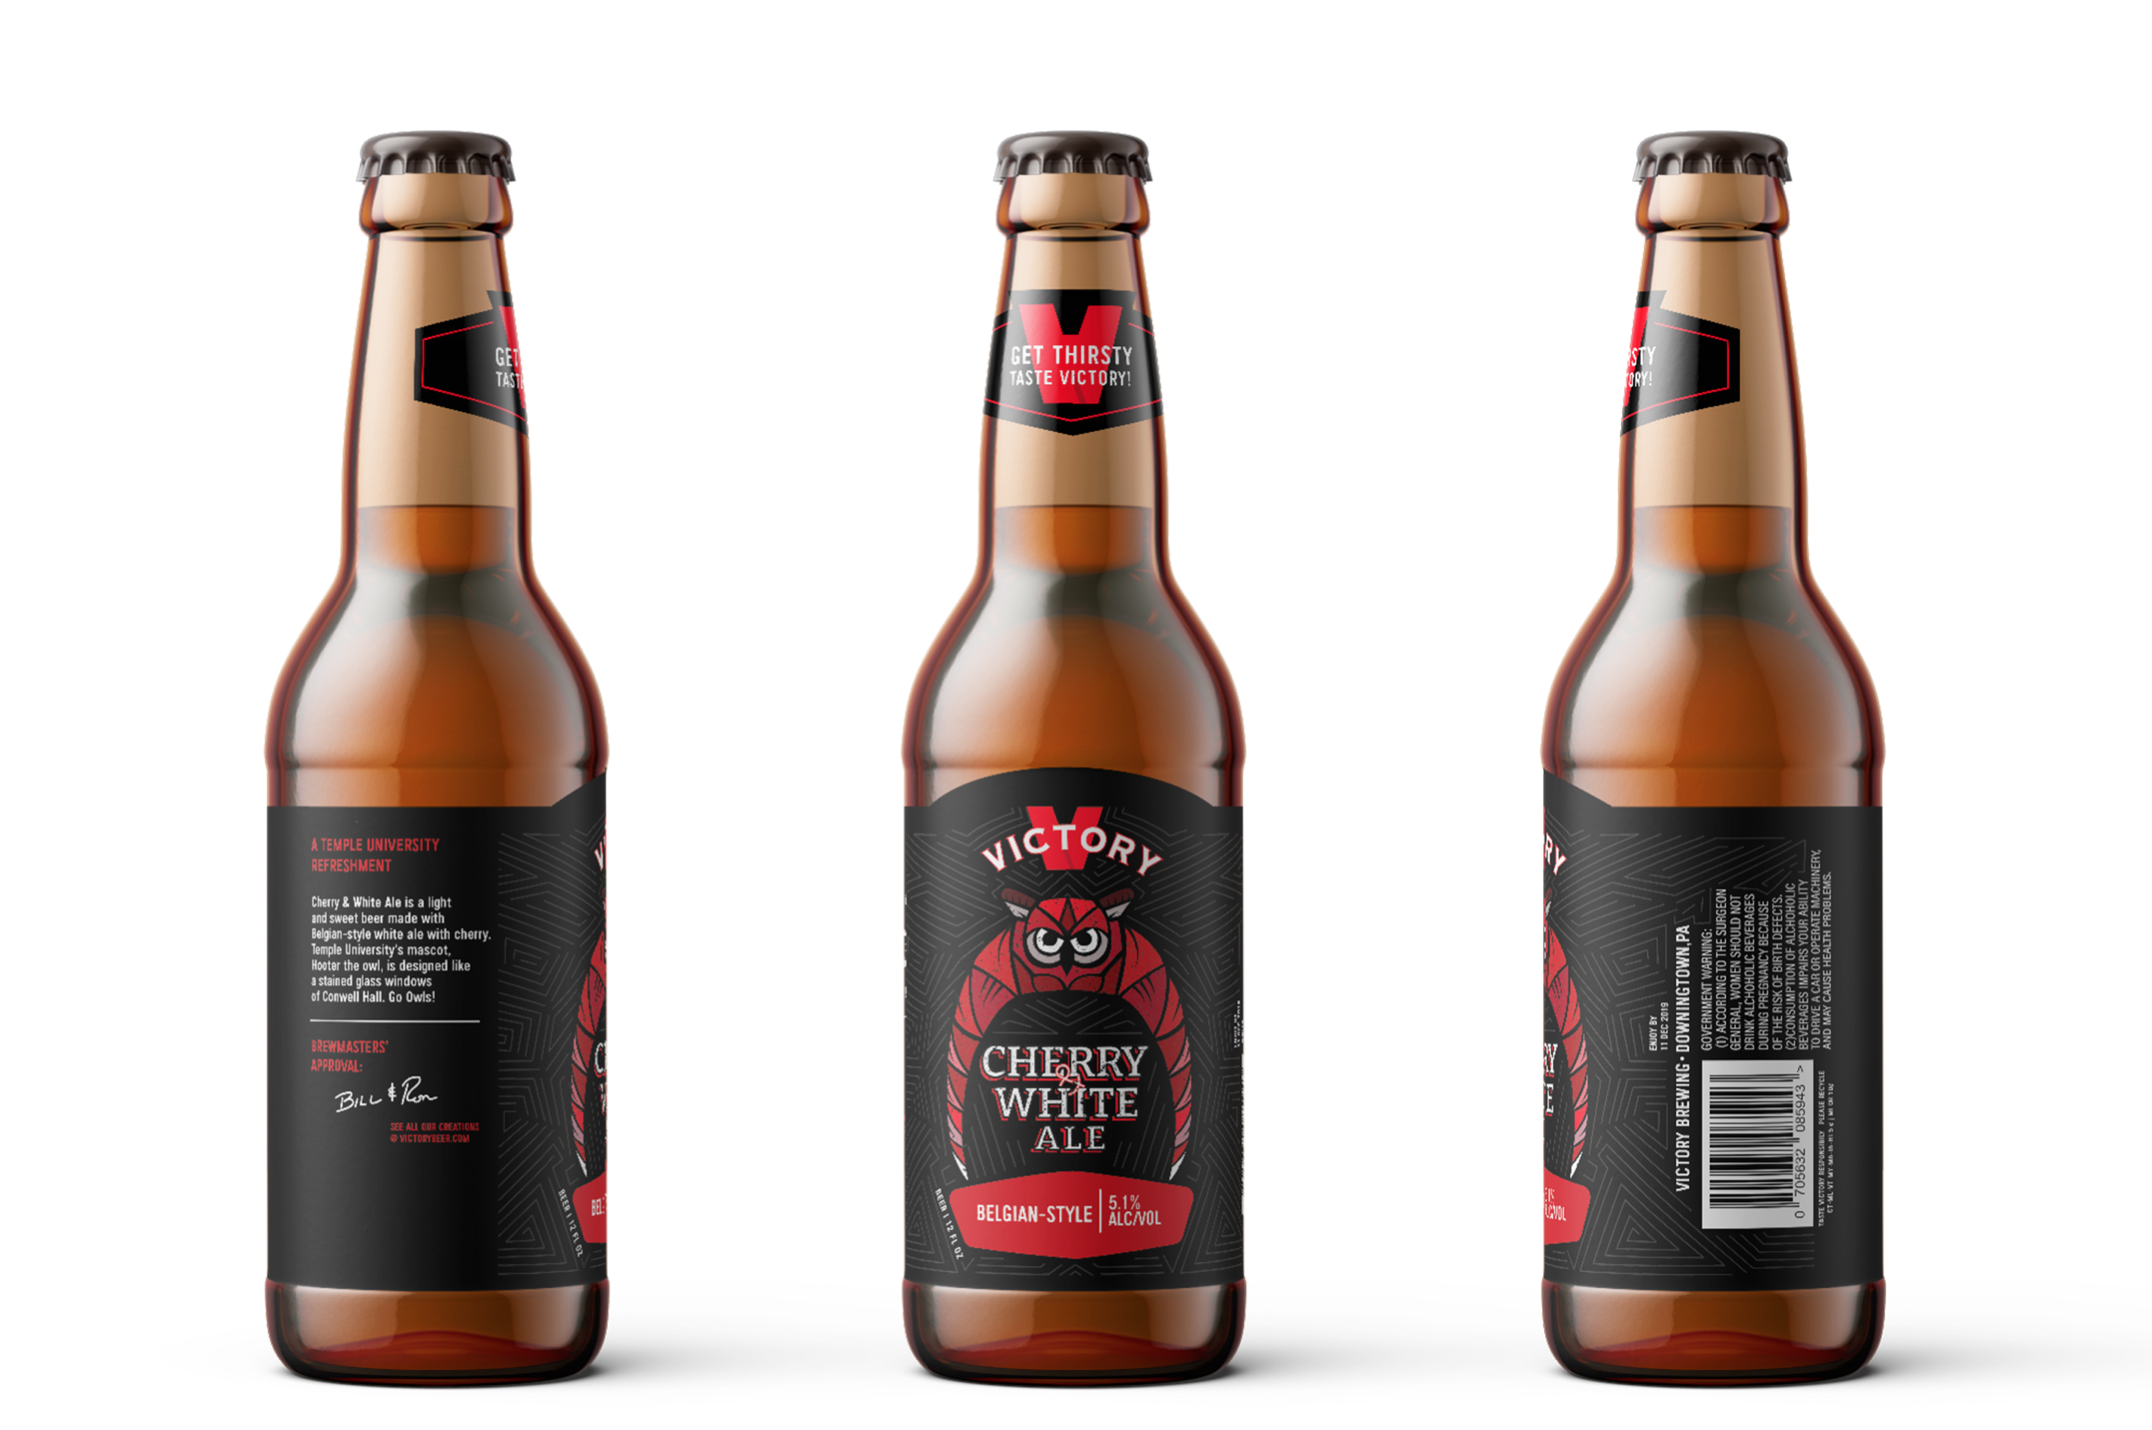 Cherry & White Ale bottle packaging